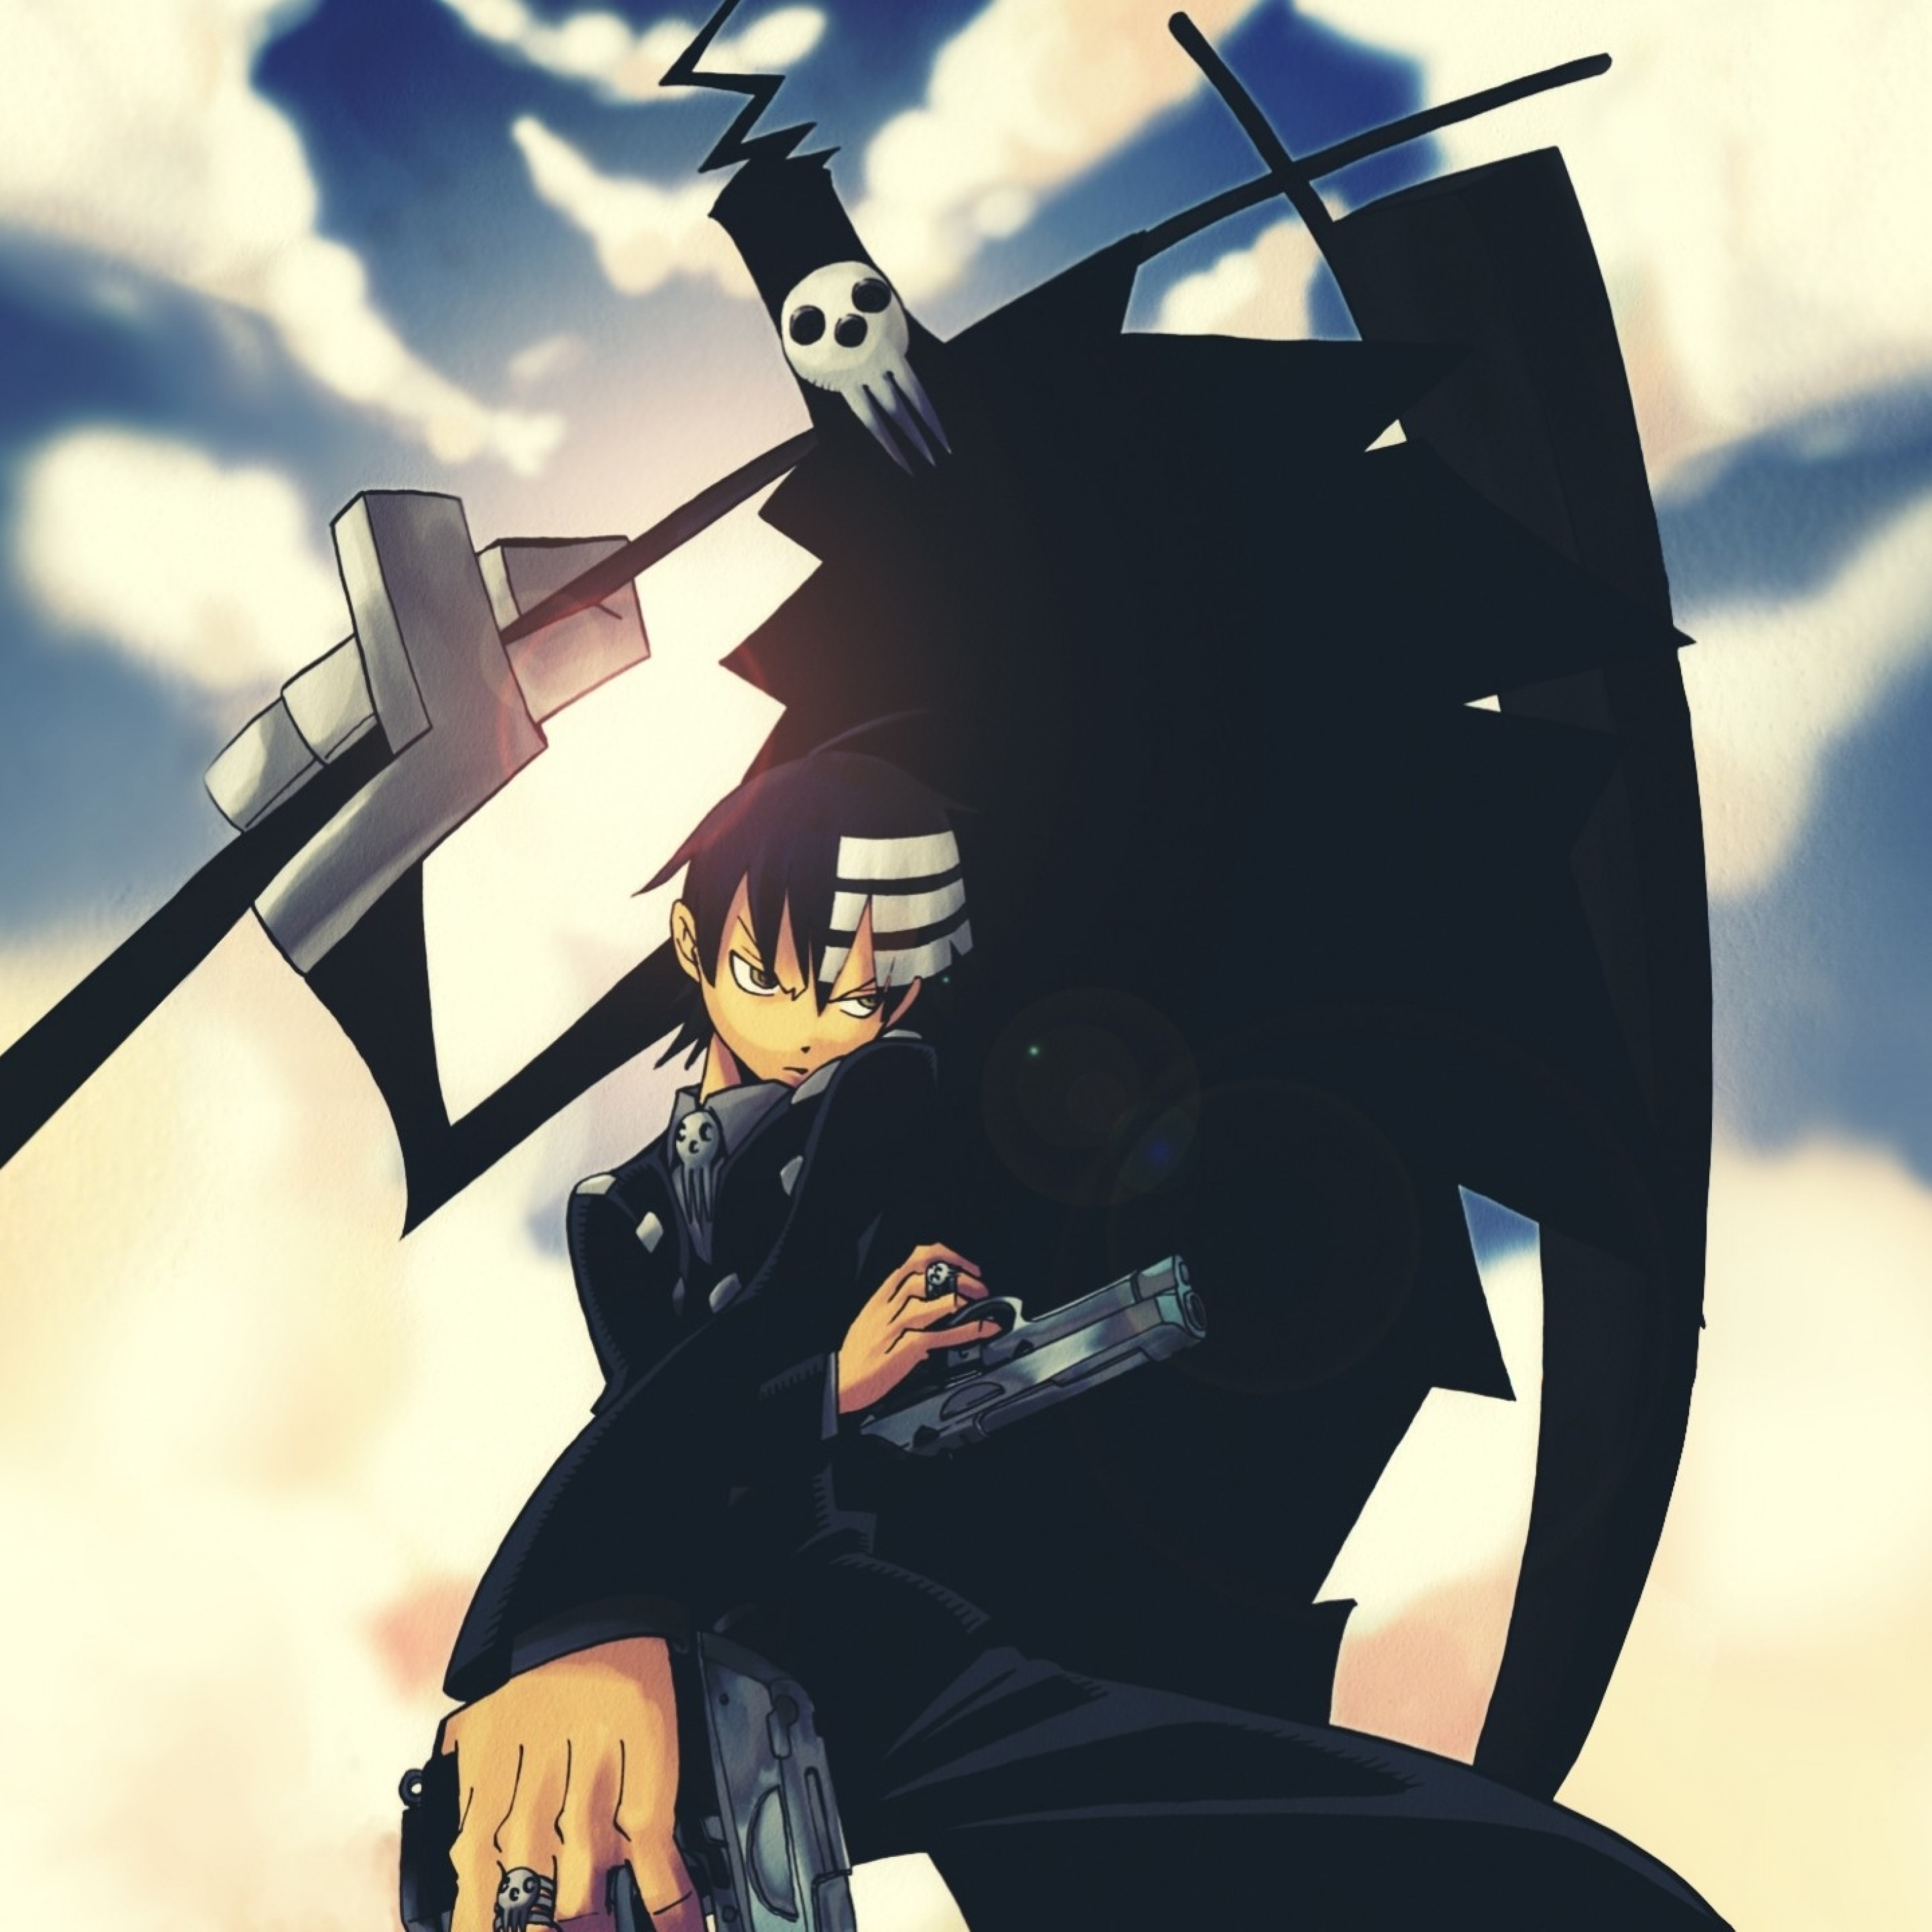 2932x2932 Soul Eater Death The Kid Anime Ipad Pro Retina Display Wallpaper Hd Anime 4k Wallpapers Images Photos And Background